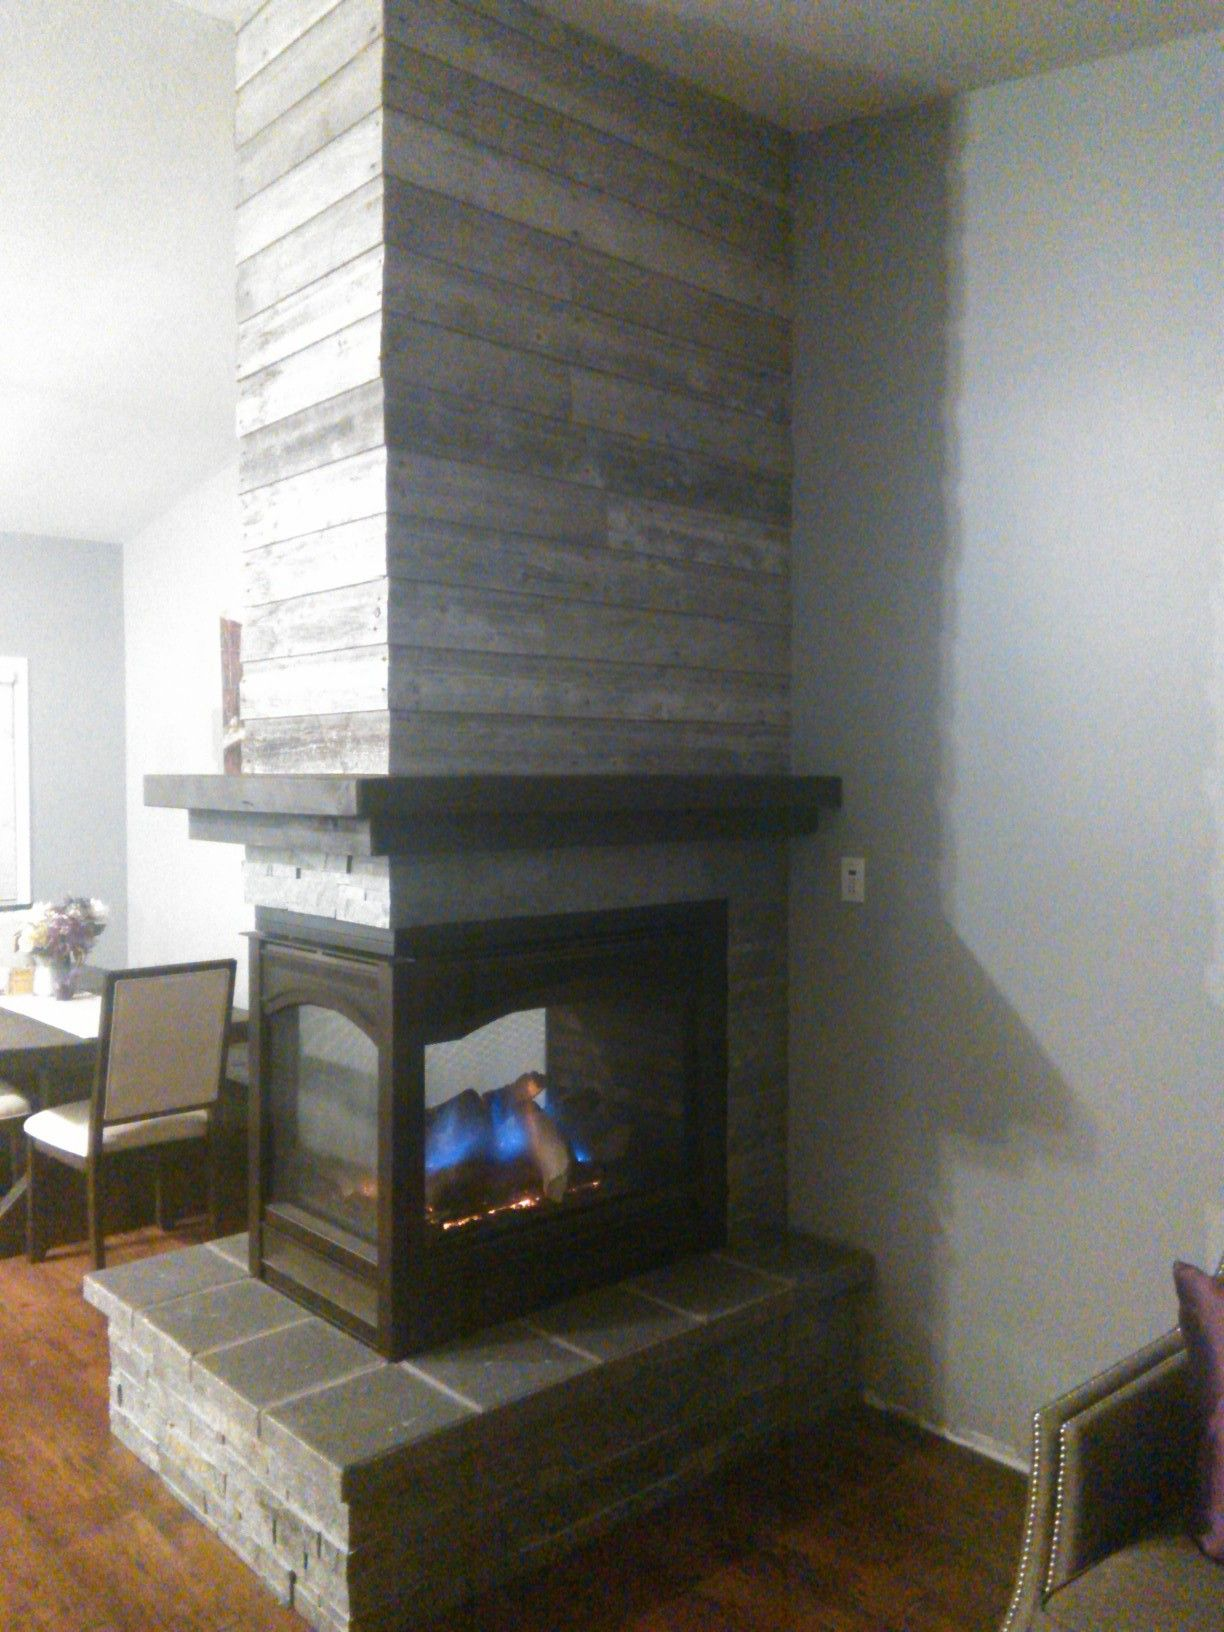 3 Sided Fireplace With Barnboard Fireplace Home Fireplace 3 Sided Fireplace